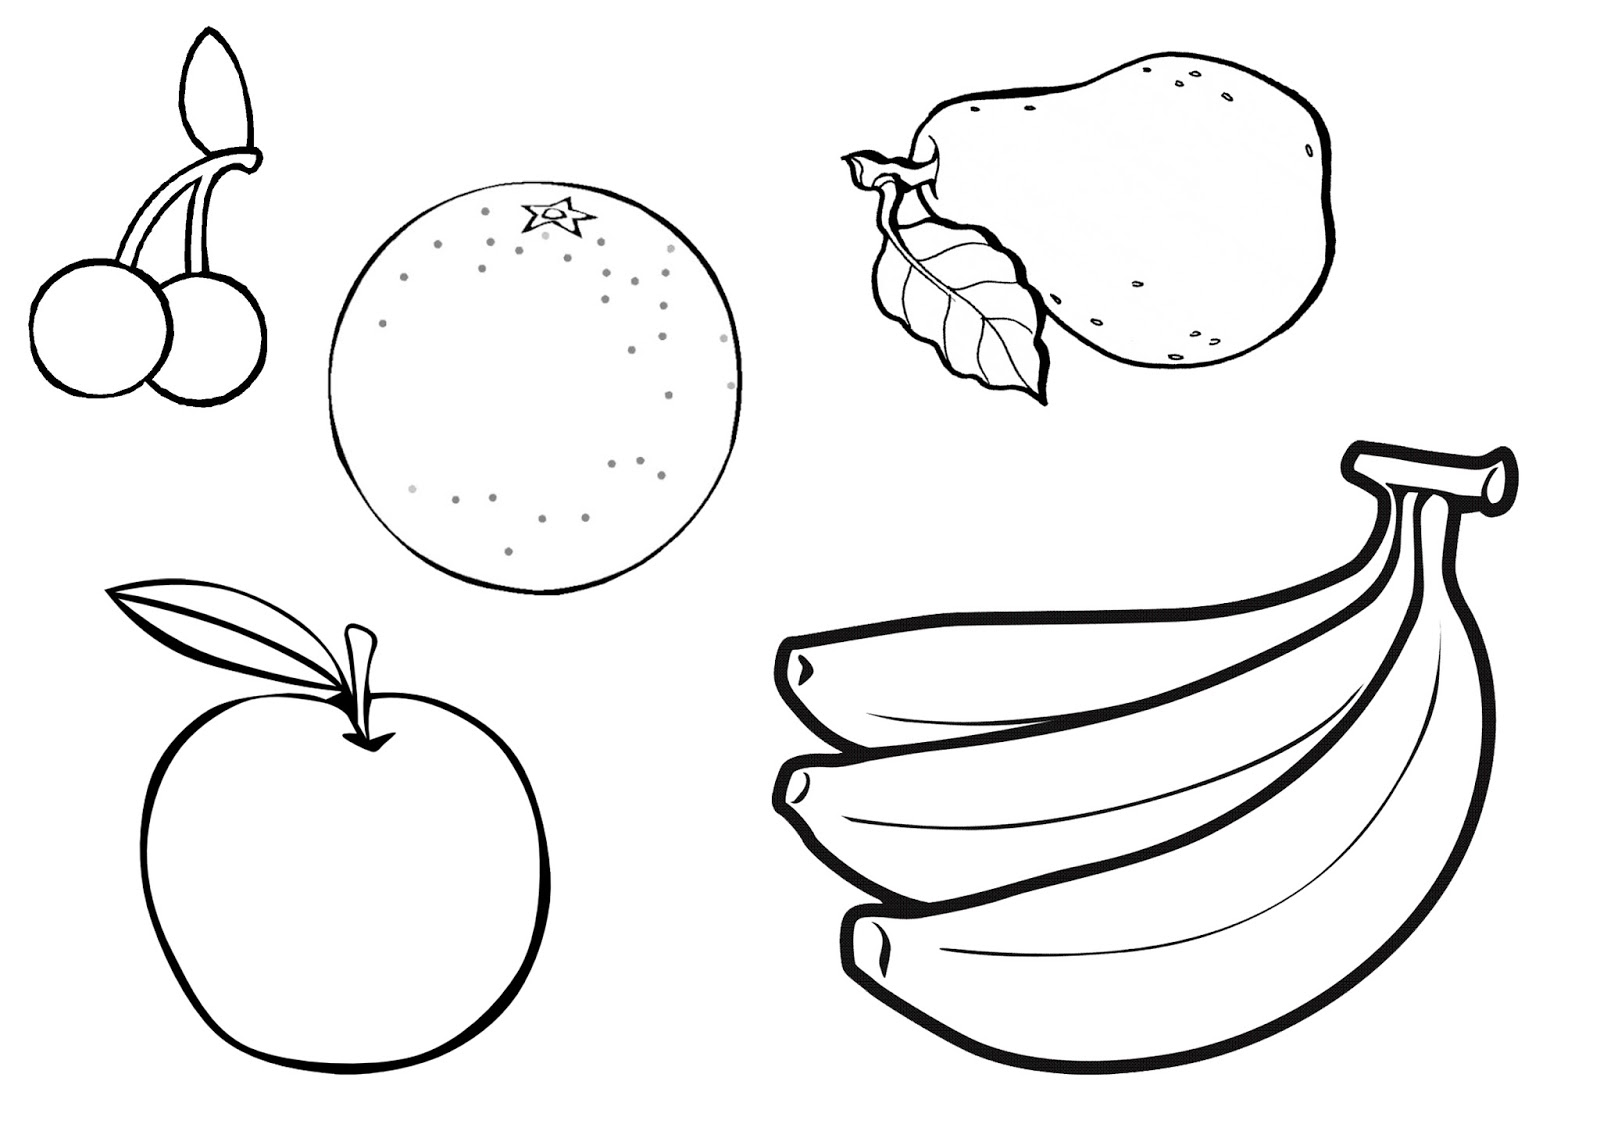 colouring images of fruits fruits drawing for colouring at getdrawings free download images colouring of fruits